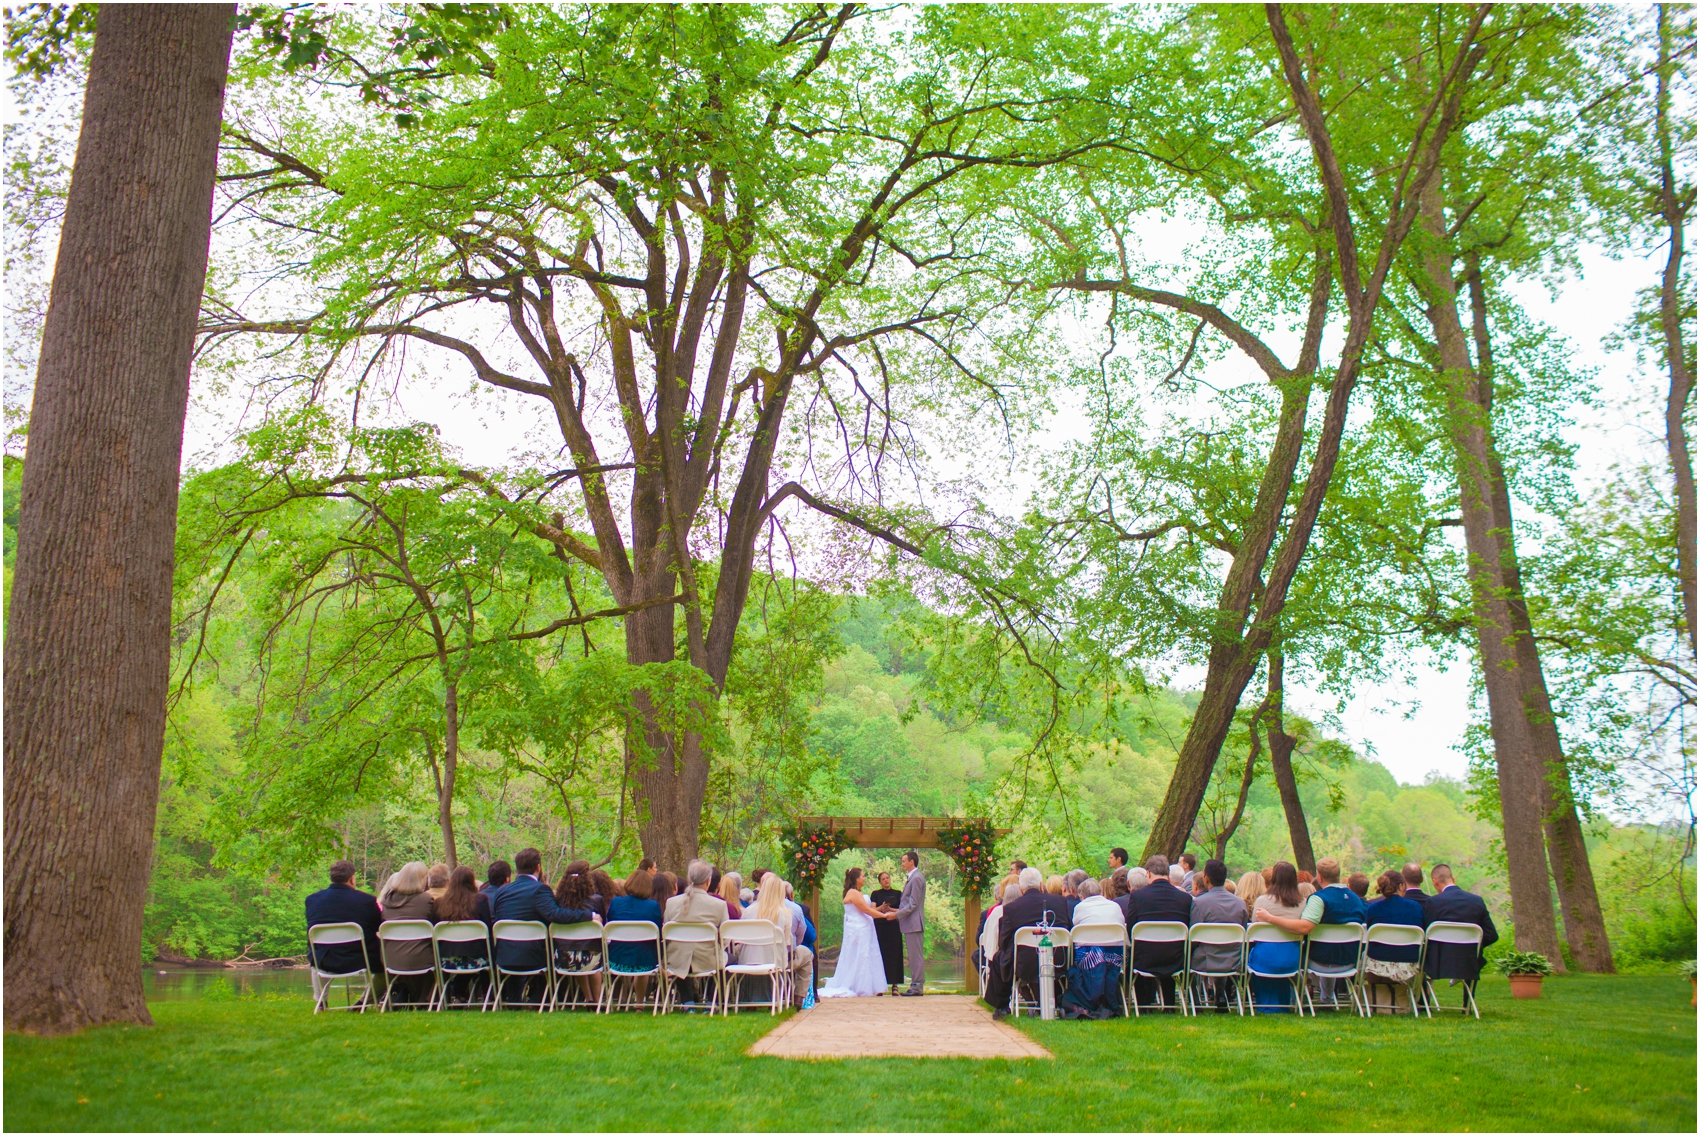 Outdoor_Central_Virginia_Clores_Bros_Summer_Wedding_Fredericksburg_VA_0016.jpg